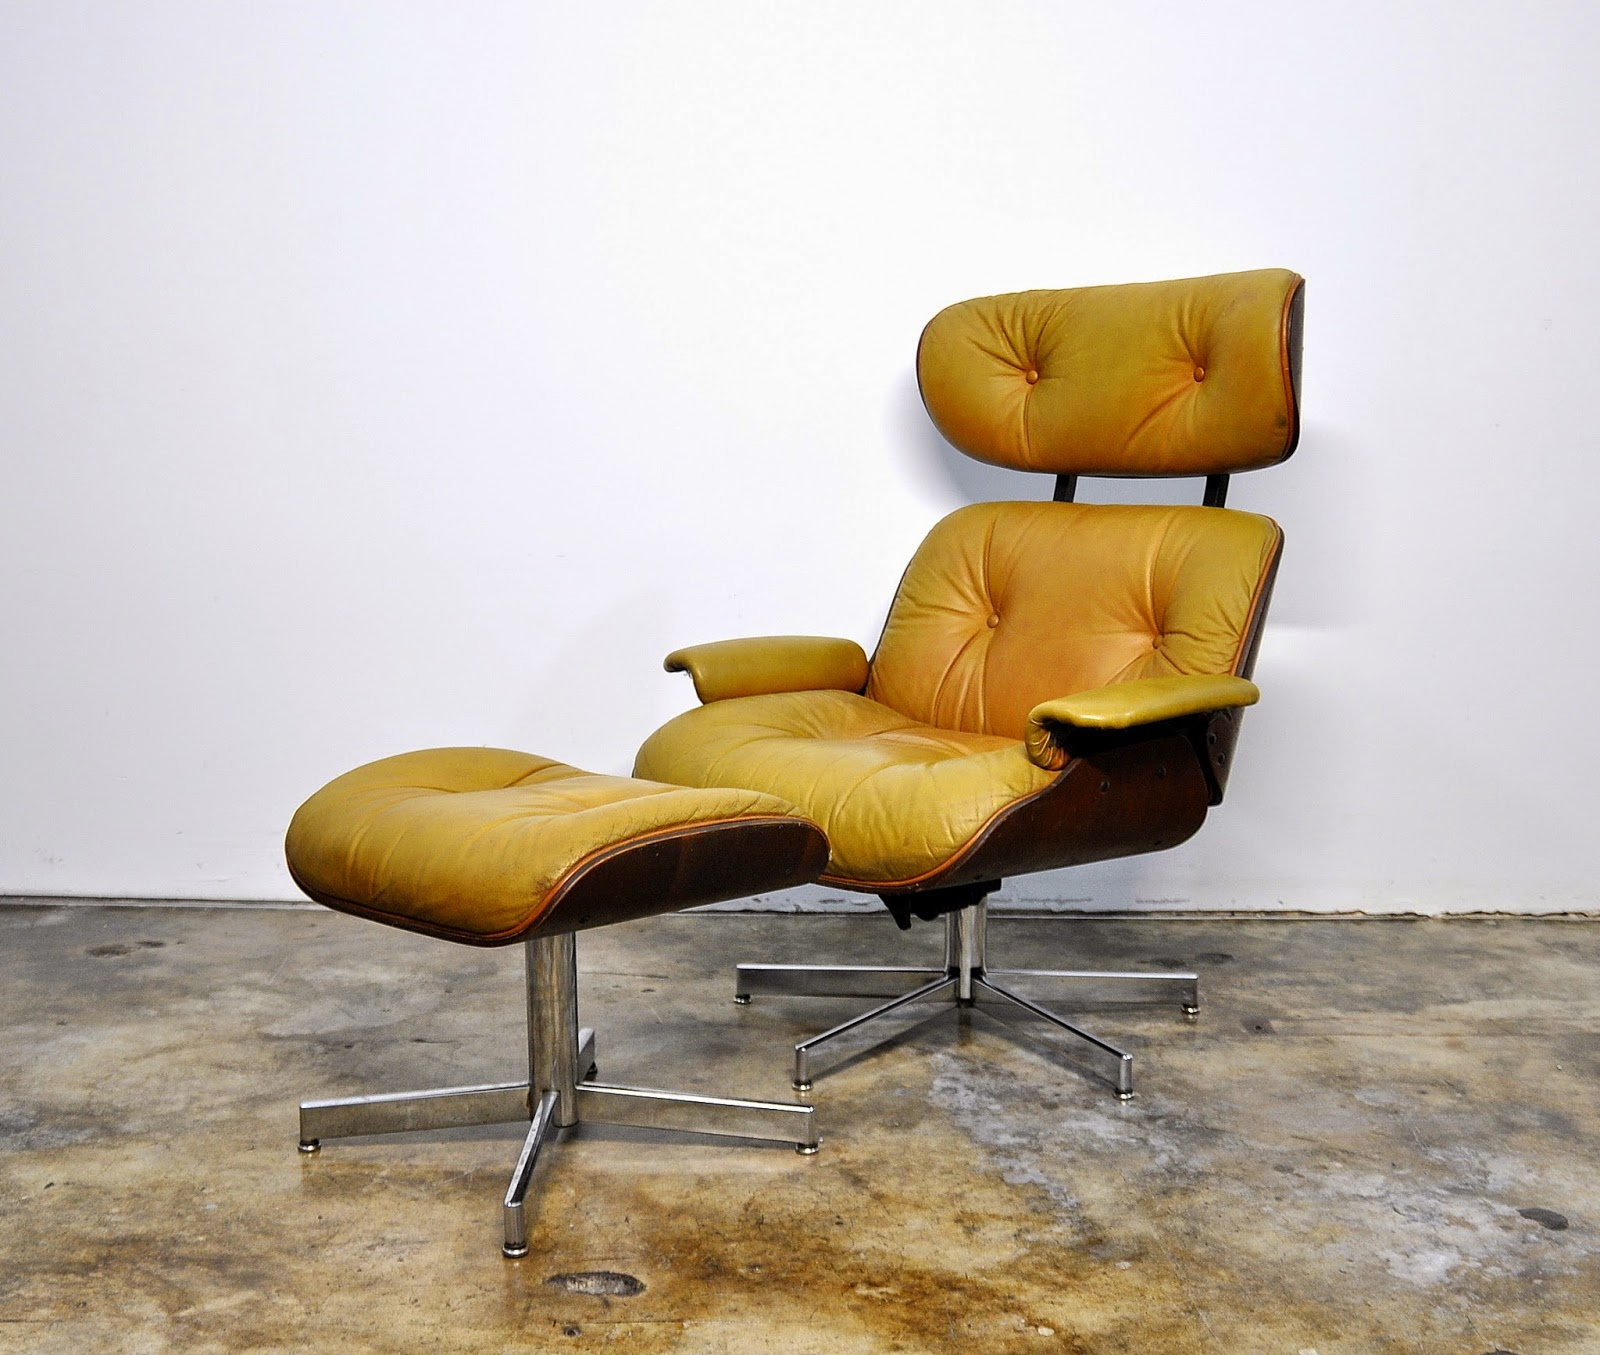 selig eames chair where to rent covers and sashes select modern: leather lounge & ottoman